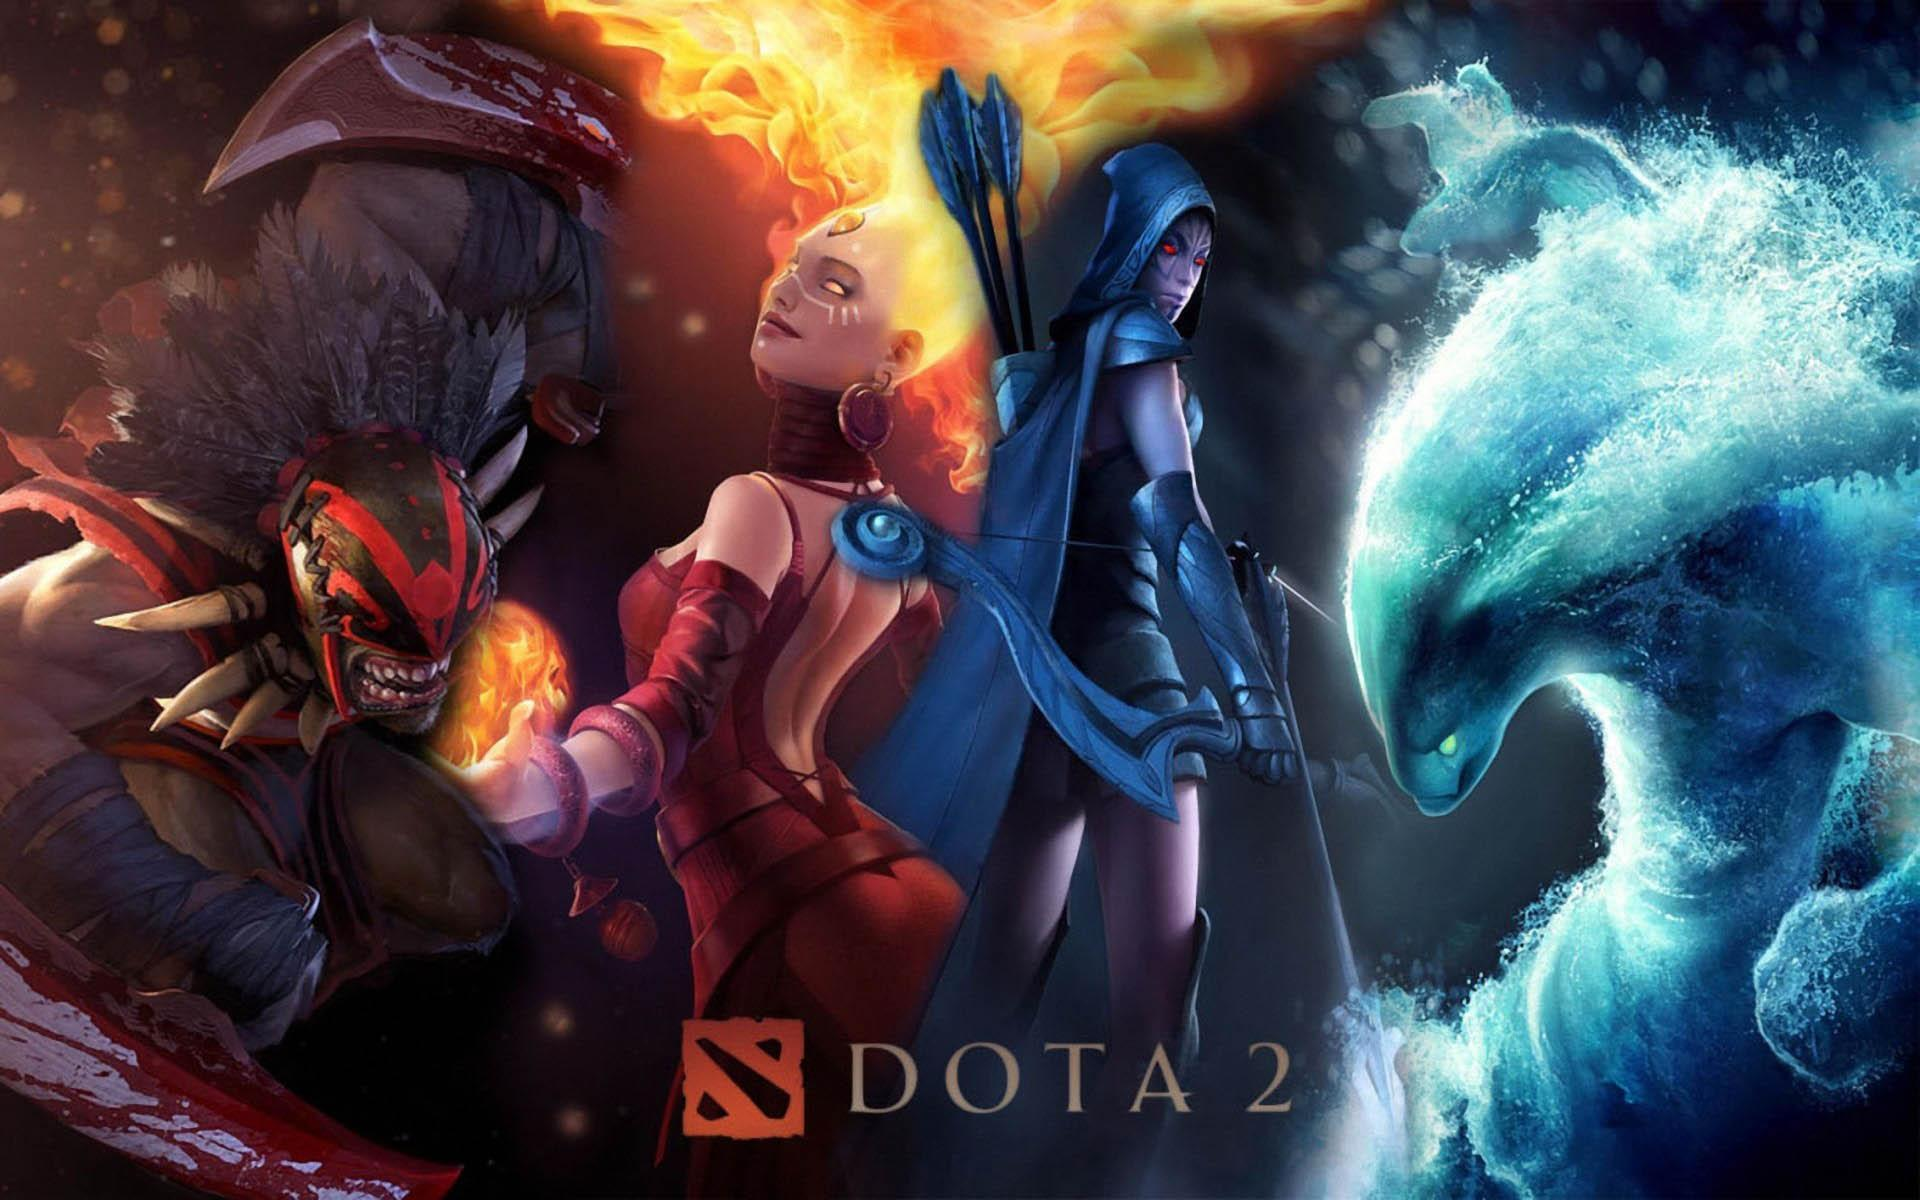 Dota 2 Battle Pass 2020 update